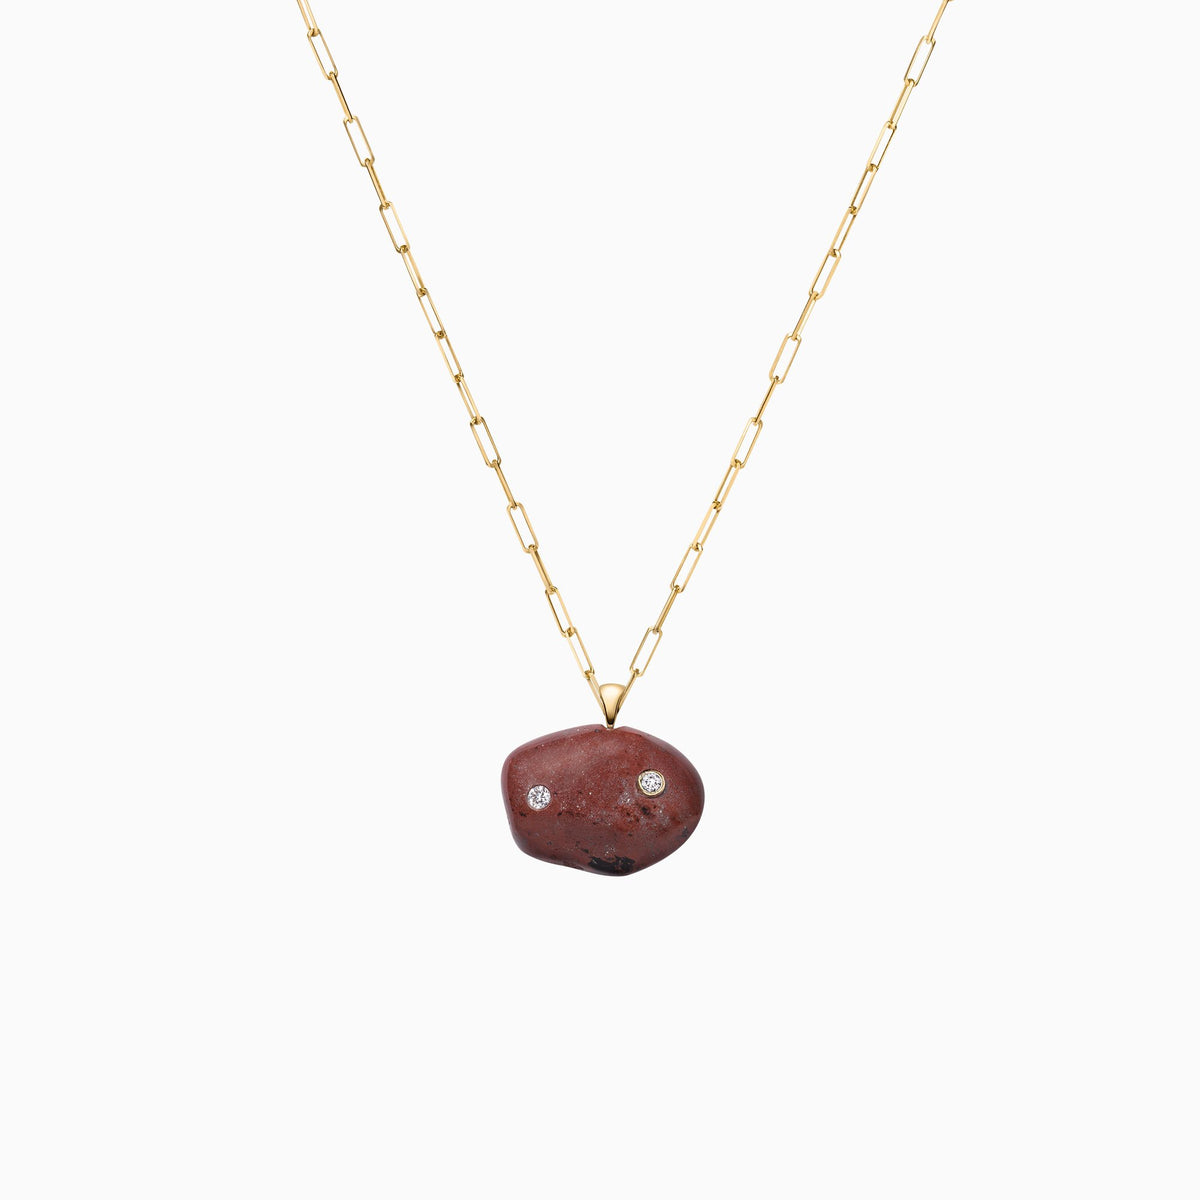 Nessa Designs Jewelry | Necklaces | Glacial Gems Pebble & Diamond